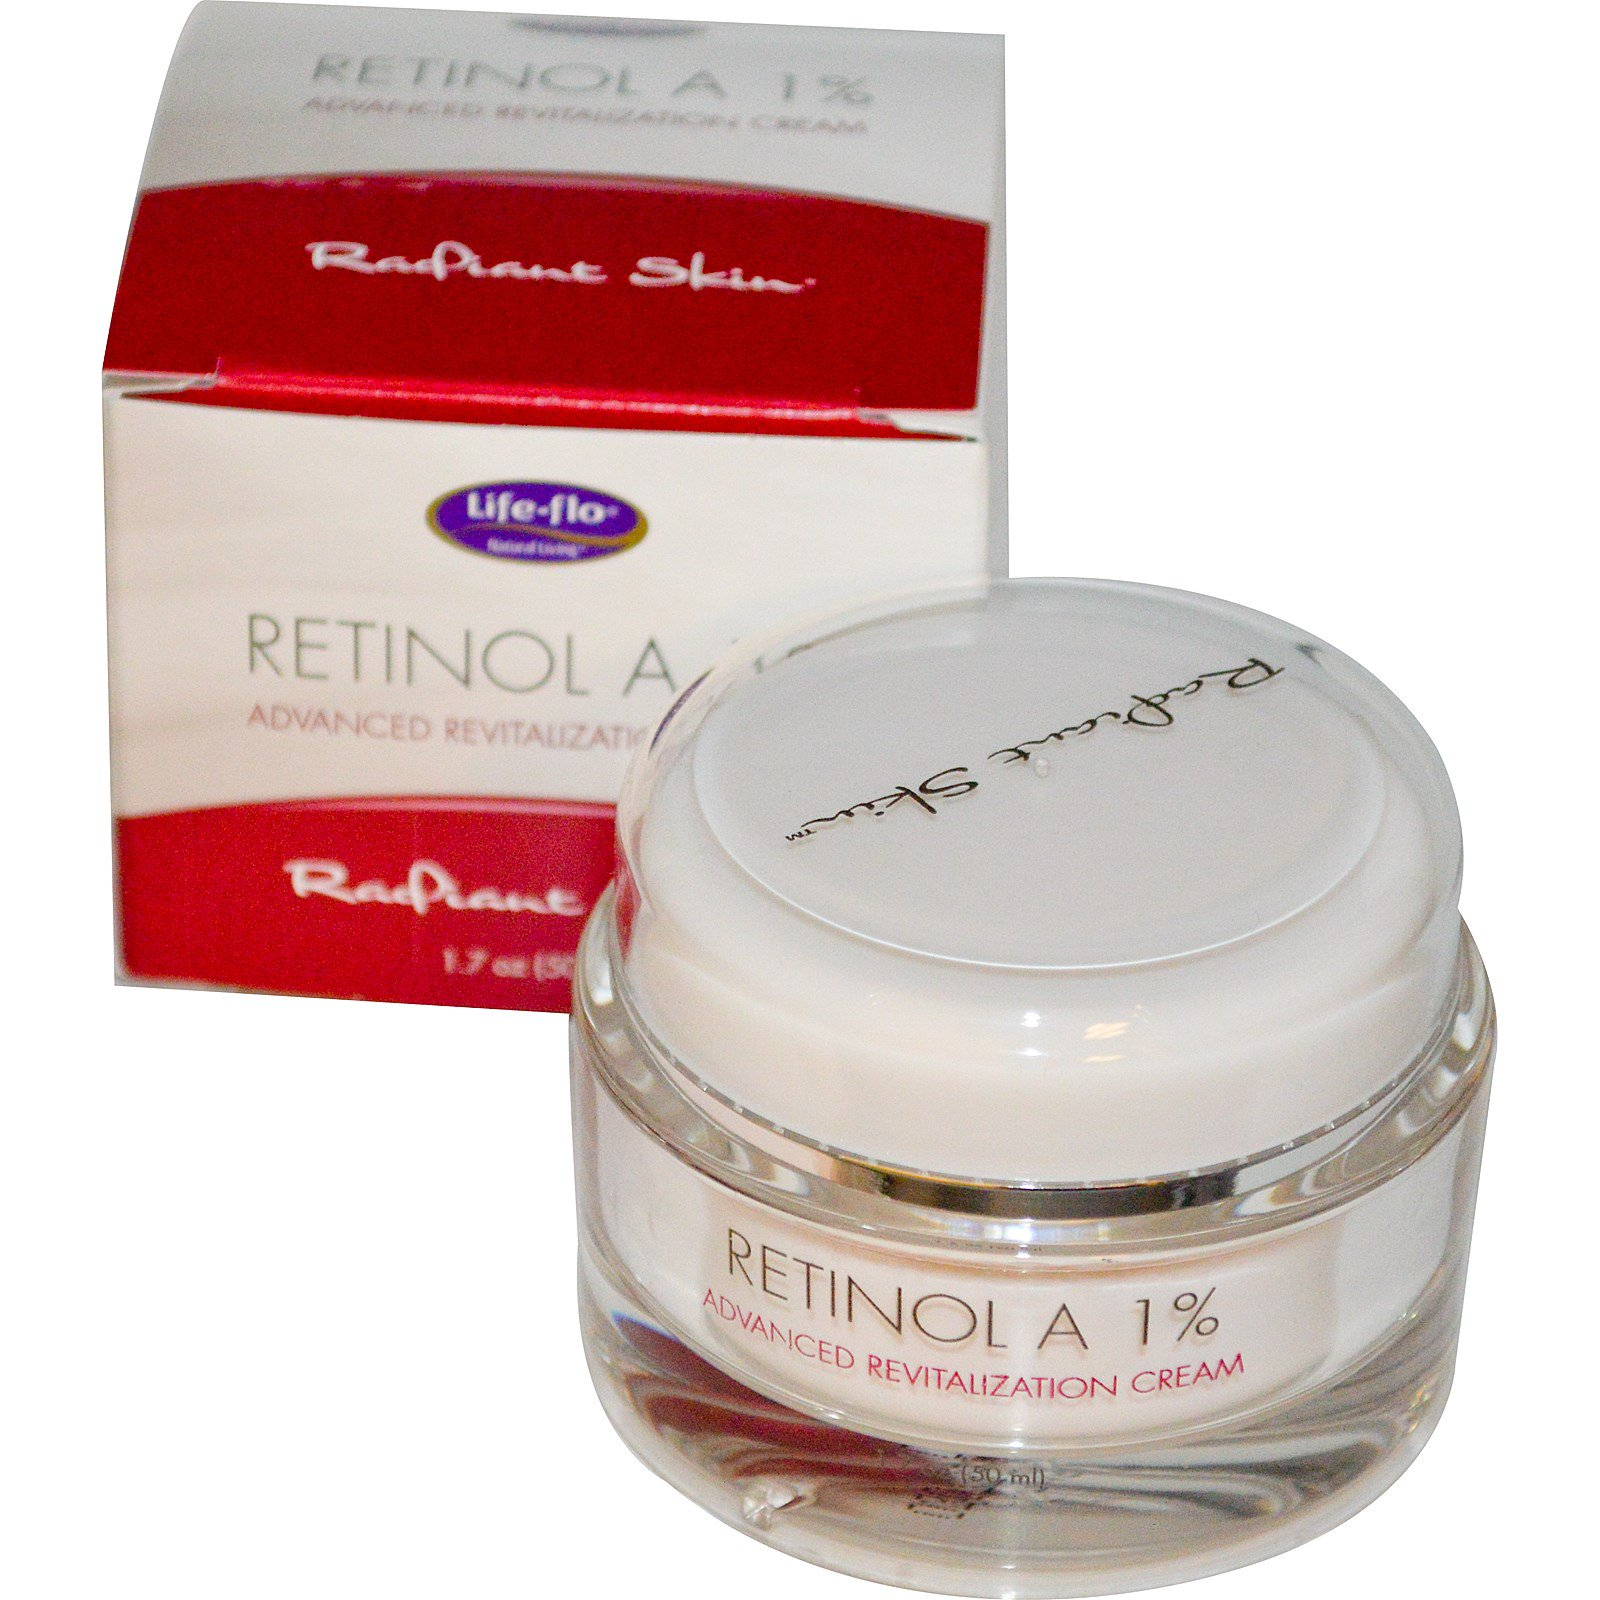 1% Retinol Cream - 1.7 oz. by AllVia (pack of 4) LOreal - Revitalift Filler Renew Filler Precision Eye Cream - 15ml/0.5oz